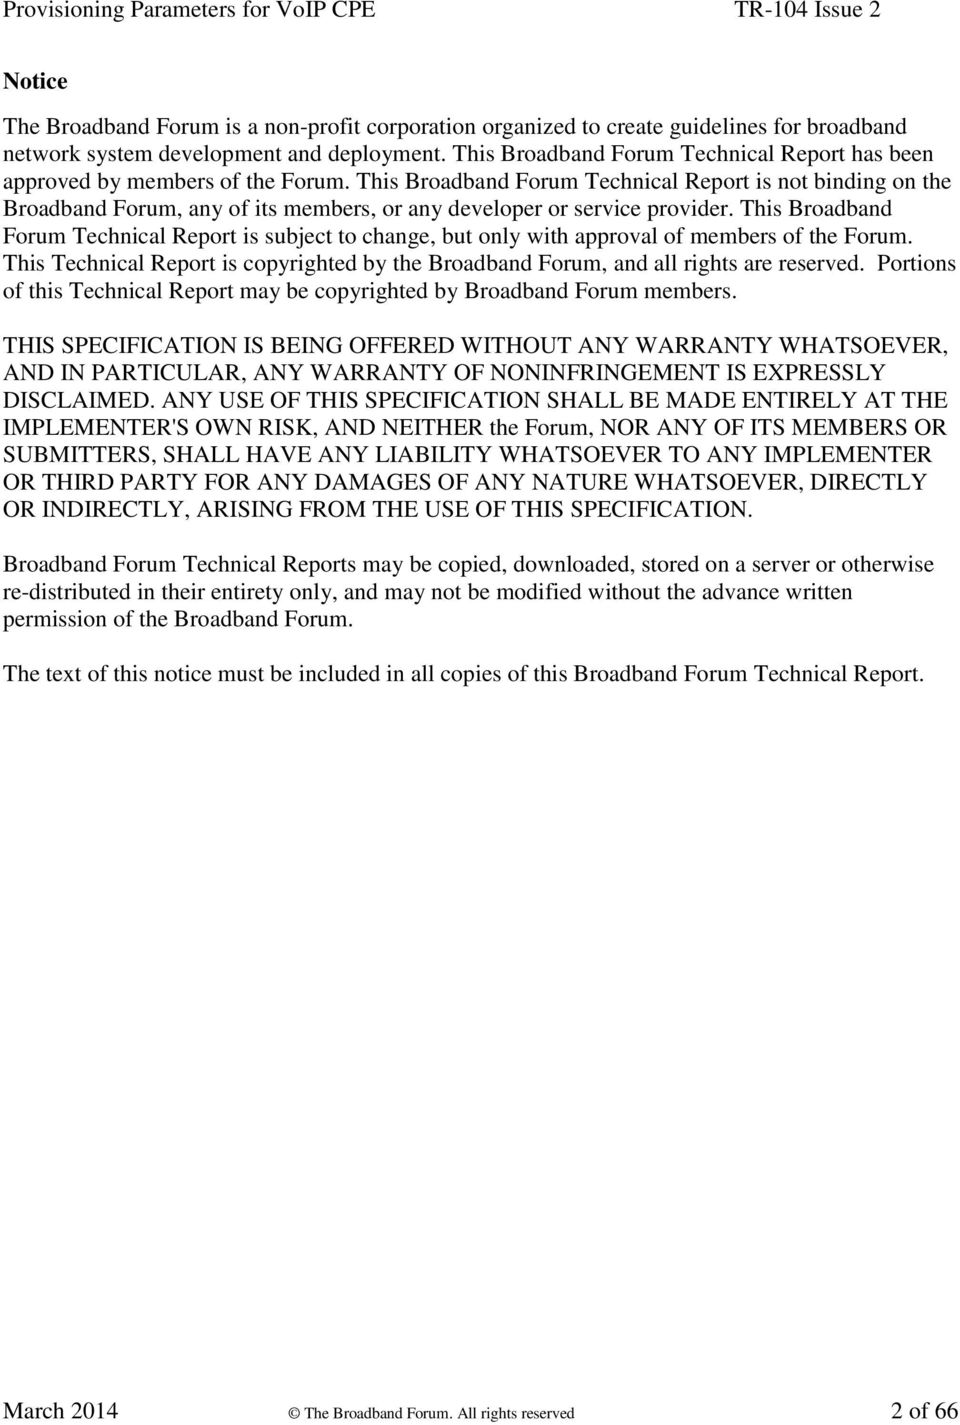 This Broadband Forum Technical Report is not binding on the Broadband Forum, any of its members, or any developer or service provider.